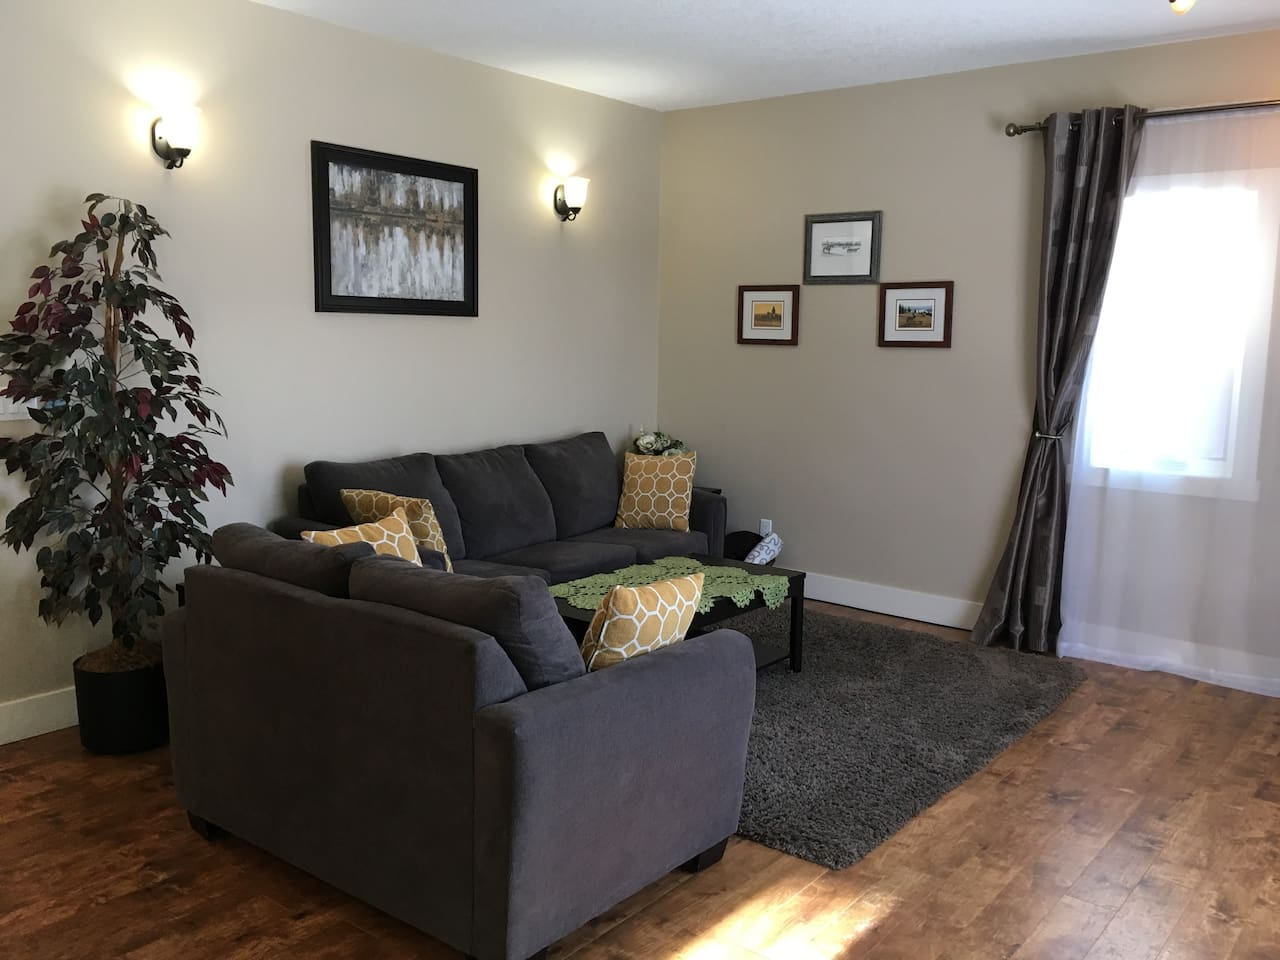 Spacious and cozy 2-bedroom apartment in Radium Hot Springs, very well equipped  with brand new furniture.